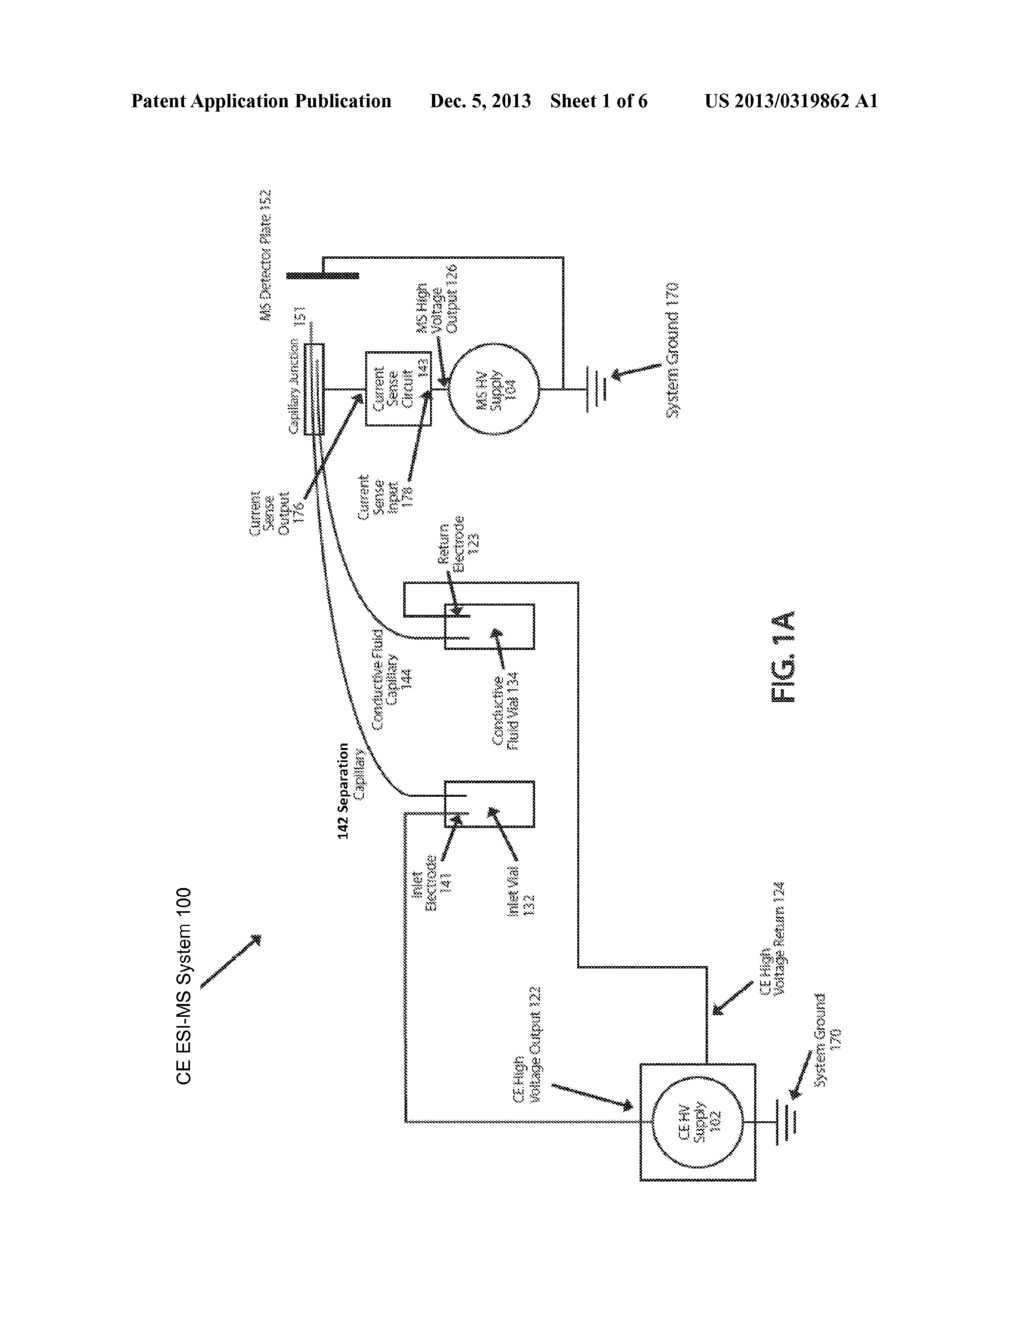 Leakage Current Sense Circuit For Error Detection In An Improved Leak Alarm Panel Wiring Diagram Capillary Electrophoresis Electrospray Ionization Mass Spectrometry System